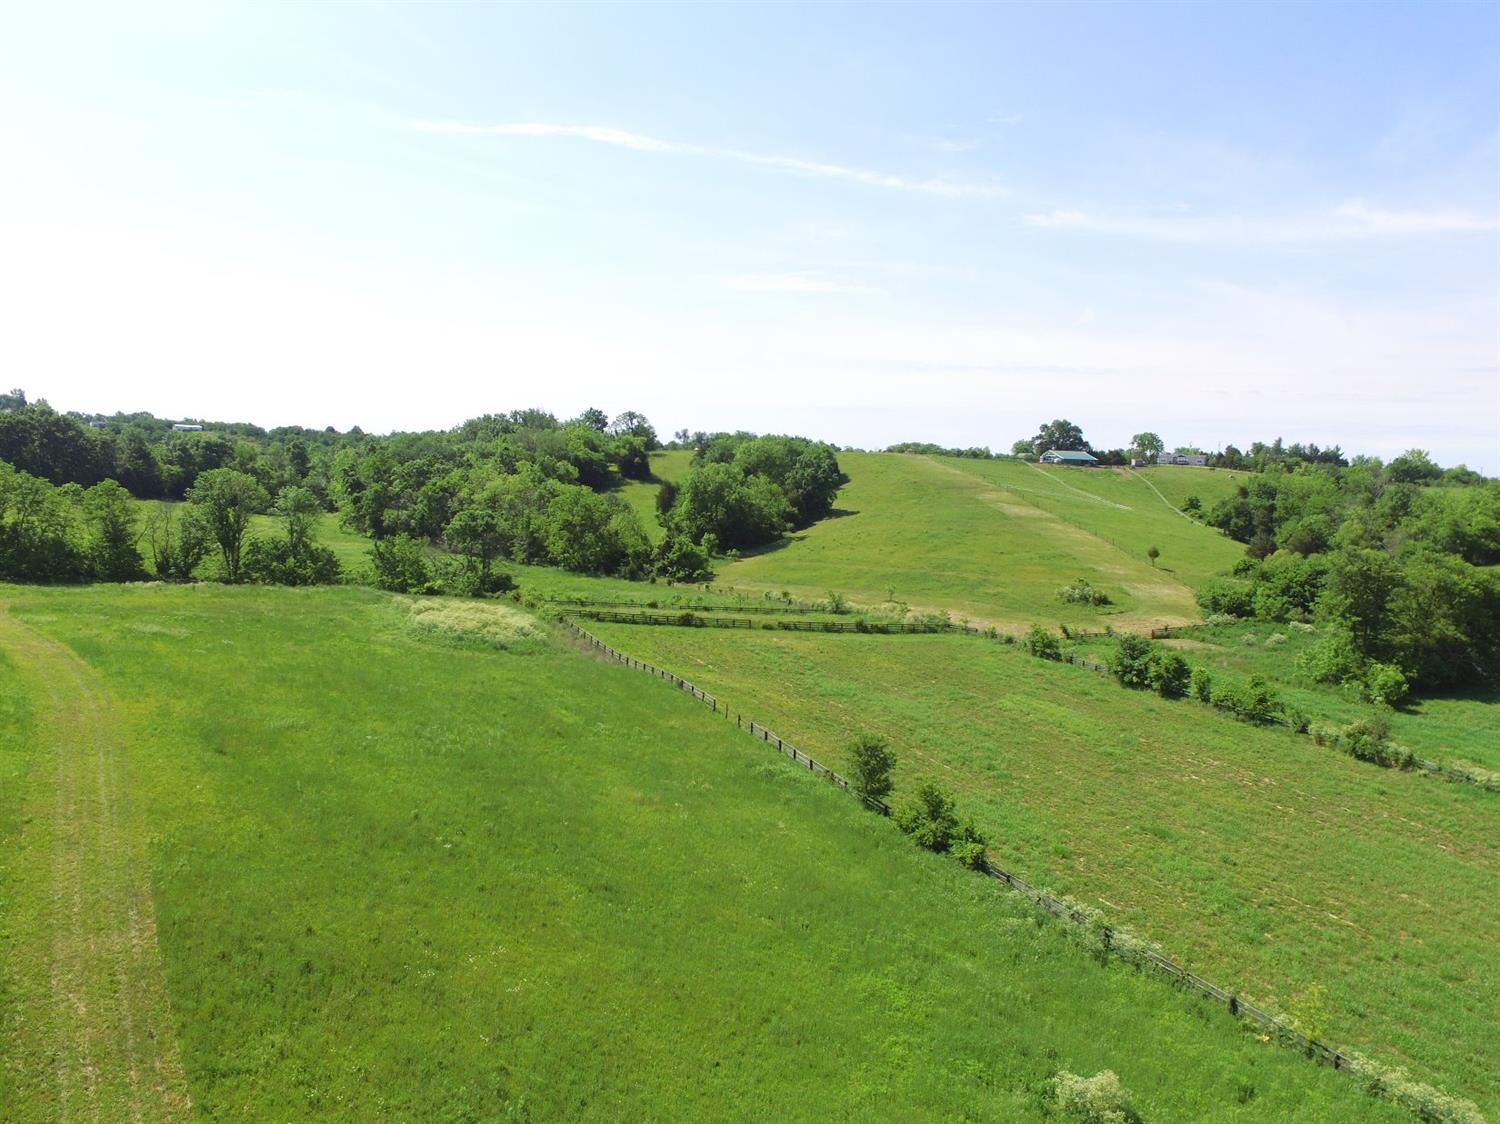 Check%20out%20this%20beautiful%20tract%20of%20land%20containing%2035%20acres.%20Farm%20is%20in%20grass%20for%20pasture%20or%20hay.%20There%20are%203%20fenced%20areas,%20app.%205%20acres%20in%20woods,%20city%20water,%20and%20electric%20on%20property.%20Also%20has%20a%2040'x%2050'%20metal%20building%20with%20steel%20frame,%2012'%20roll%20up%20door,%20concrete%20floor,%20insulated,%20full%20bath,%20water%20and%20electric.%20Other%20amenities%20include%20septic%20tank%20for%20present%20building,%20and%20field%20lines%20already%20in%20for%20new%20home%20if%20desired.%20Great%20property.%20Call%20for%20a%20private%20showing%20today.